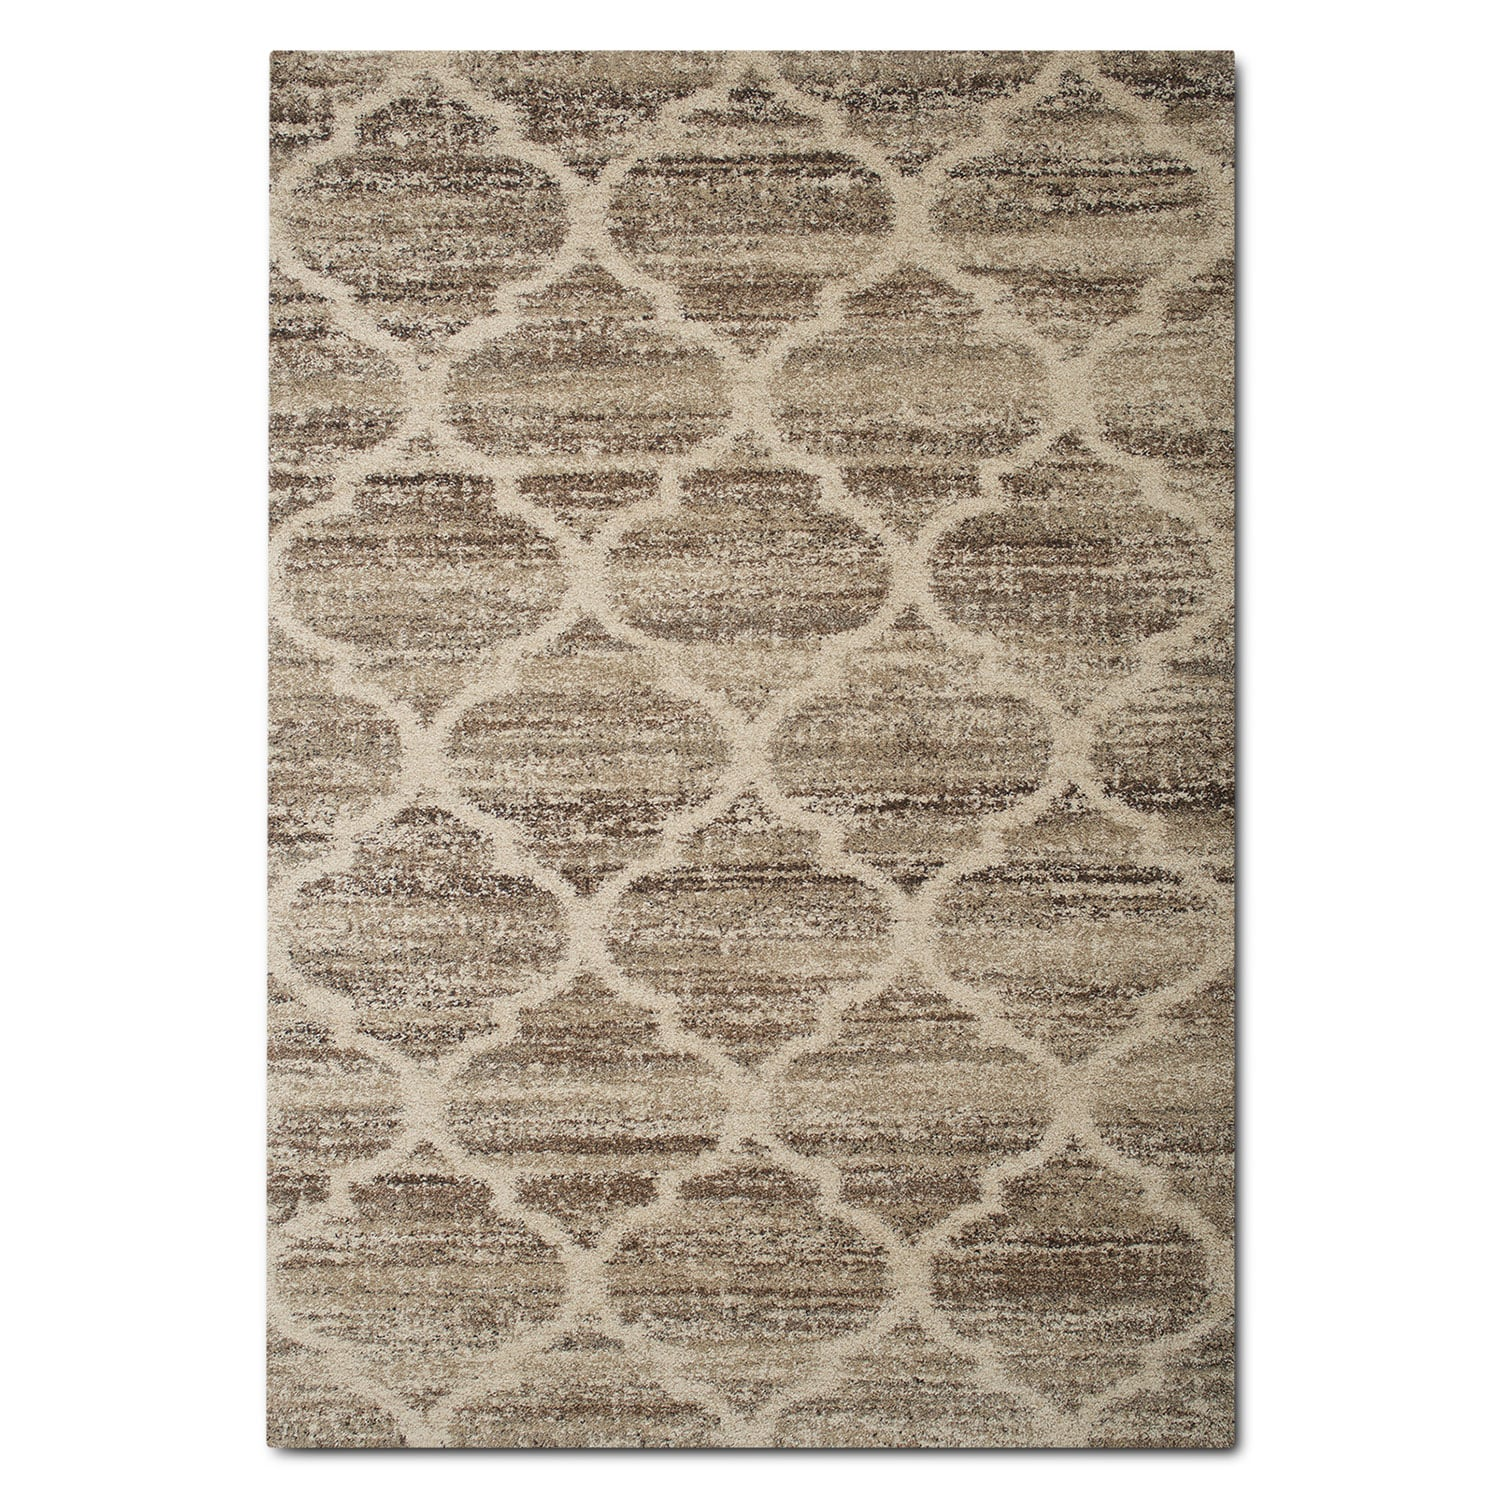 Rugs - Granada 5' x 8' Area Rug - Tan and Brown